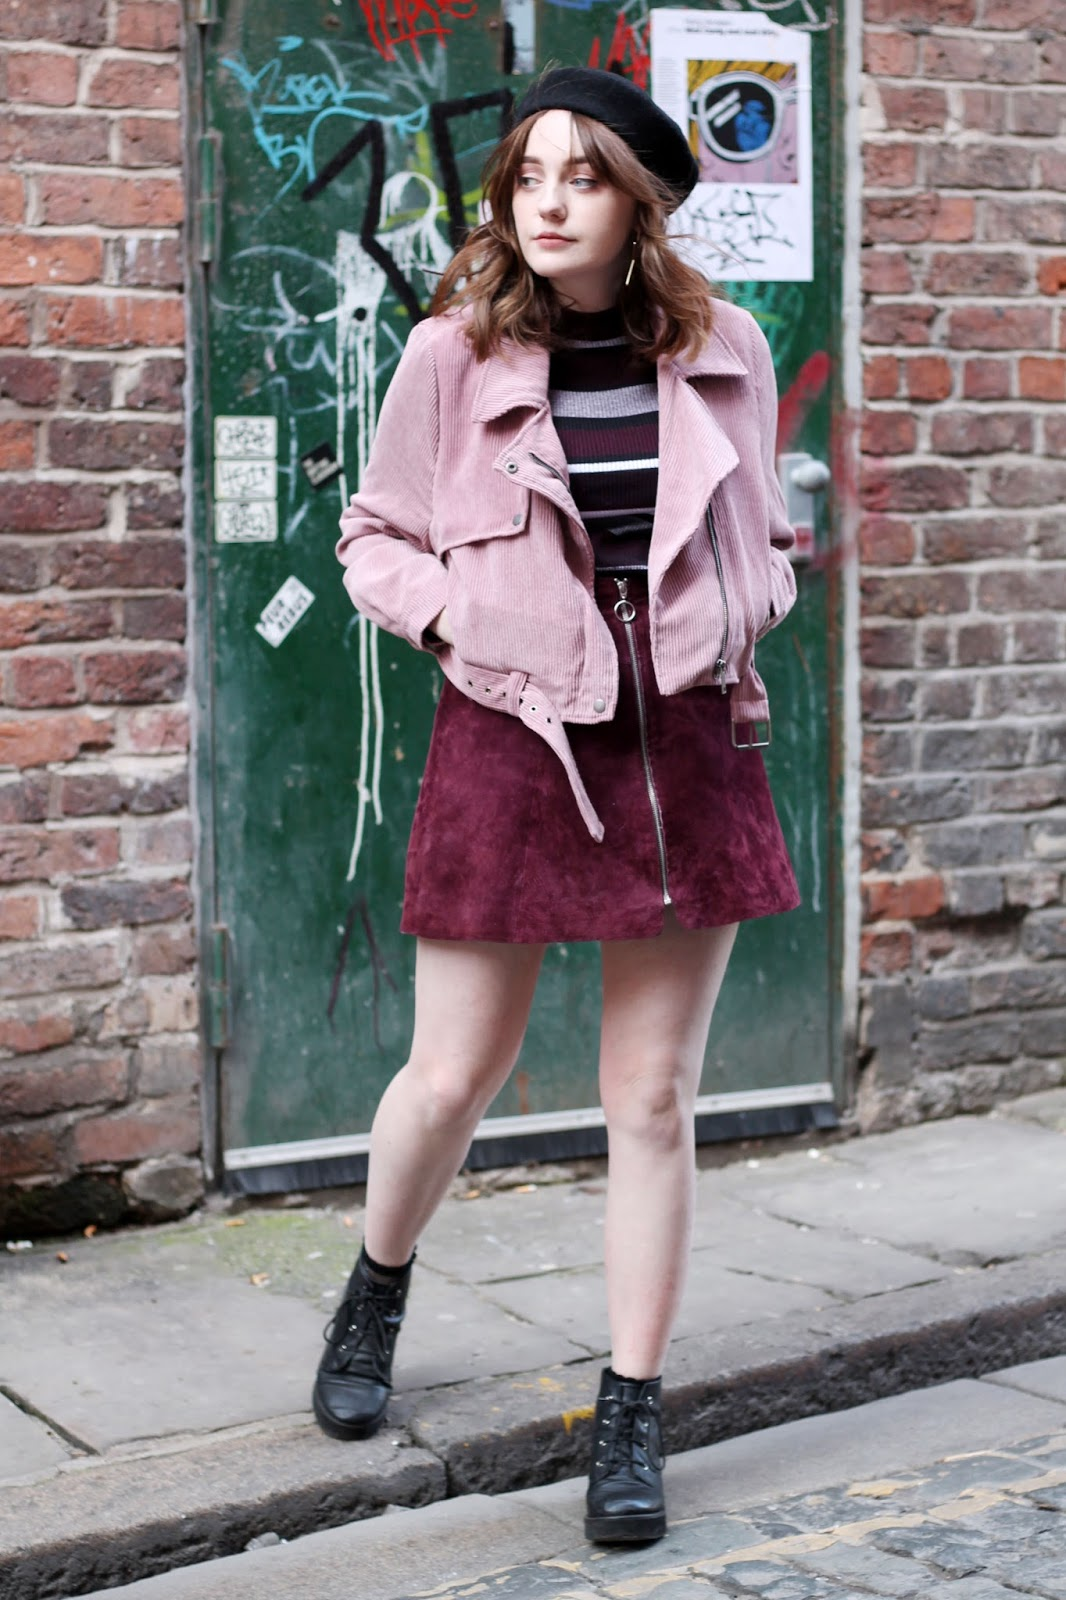 Liverpool style blogger wearing Nasty Gal pink corduroy biker jacket, black beret, Burgundy white and black stripe turtleneck jumper, Burgundy suede a line zip up skirt and black lace up boots